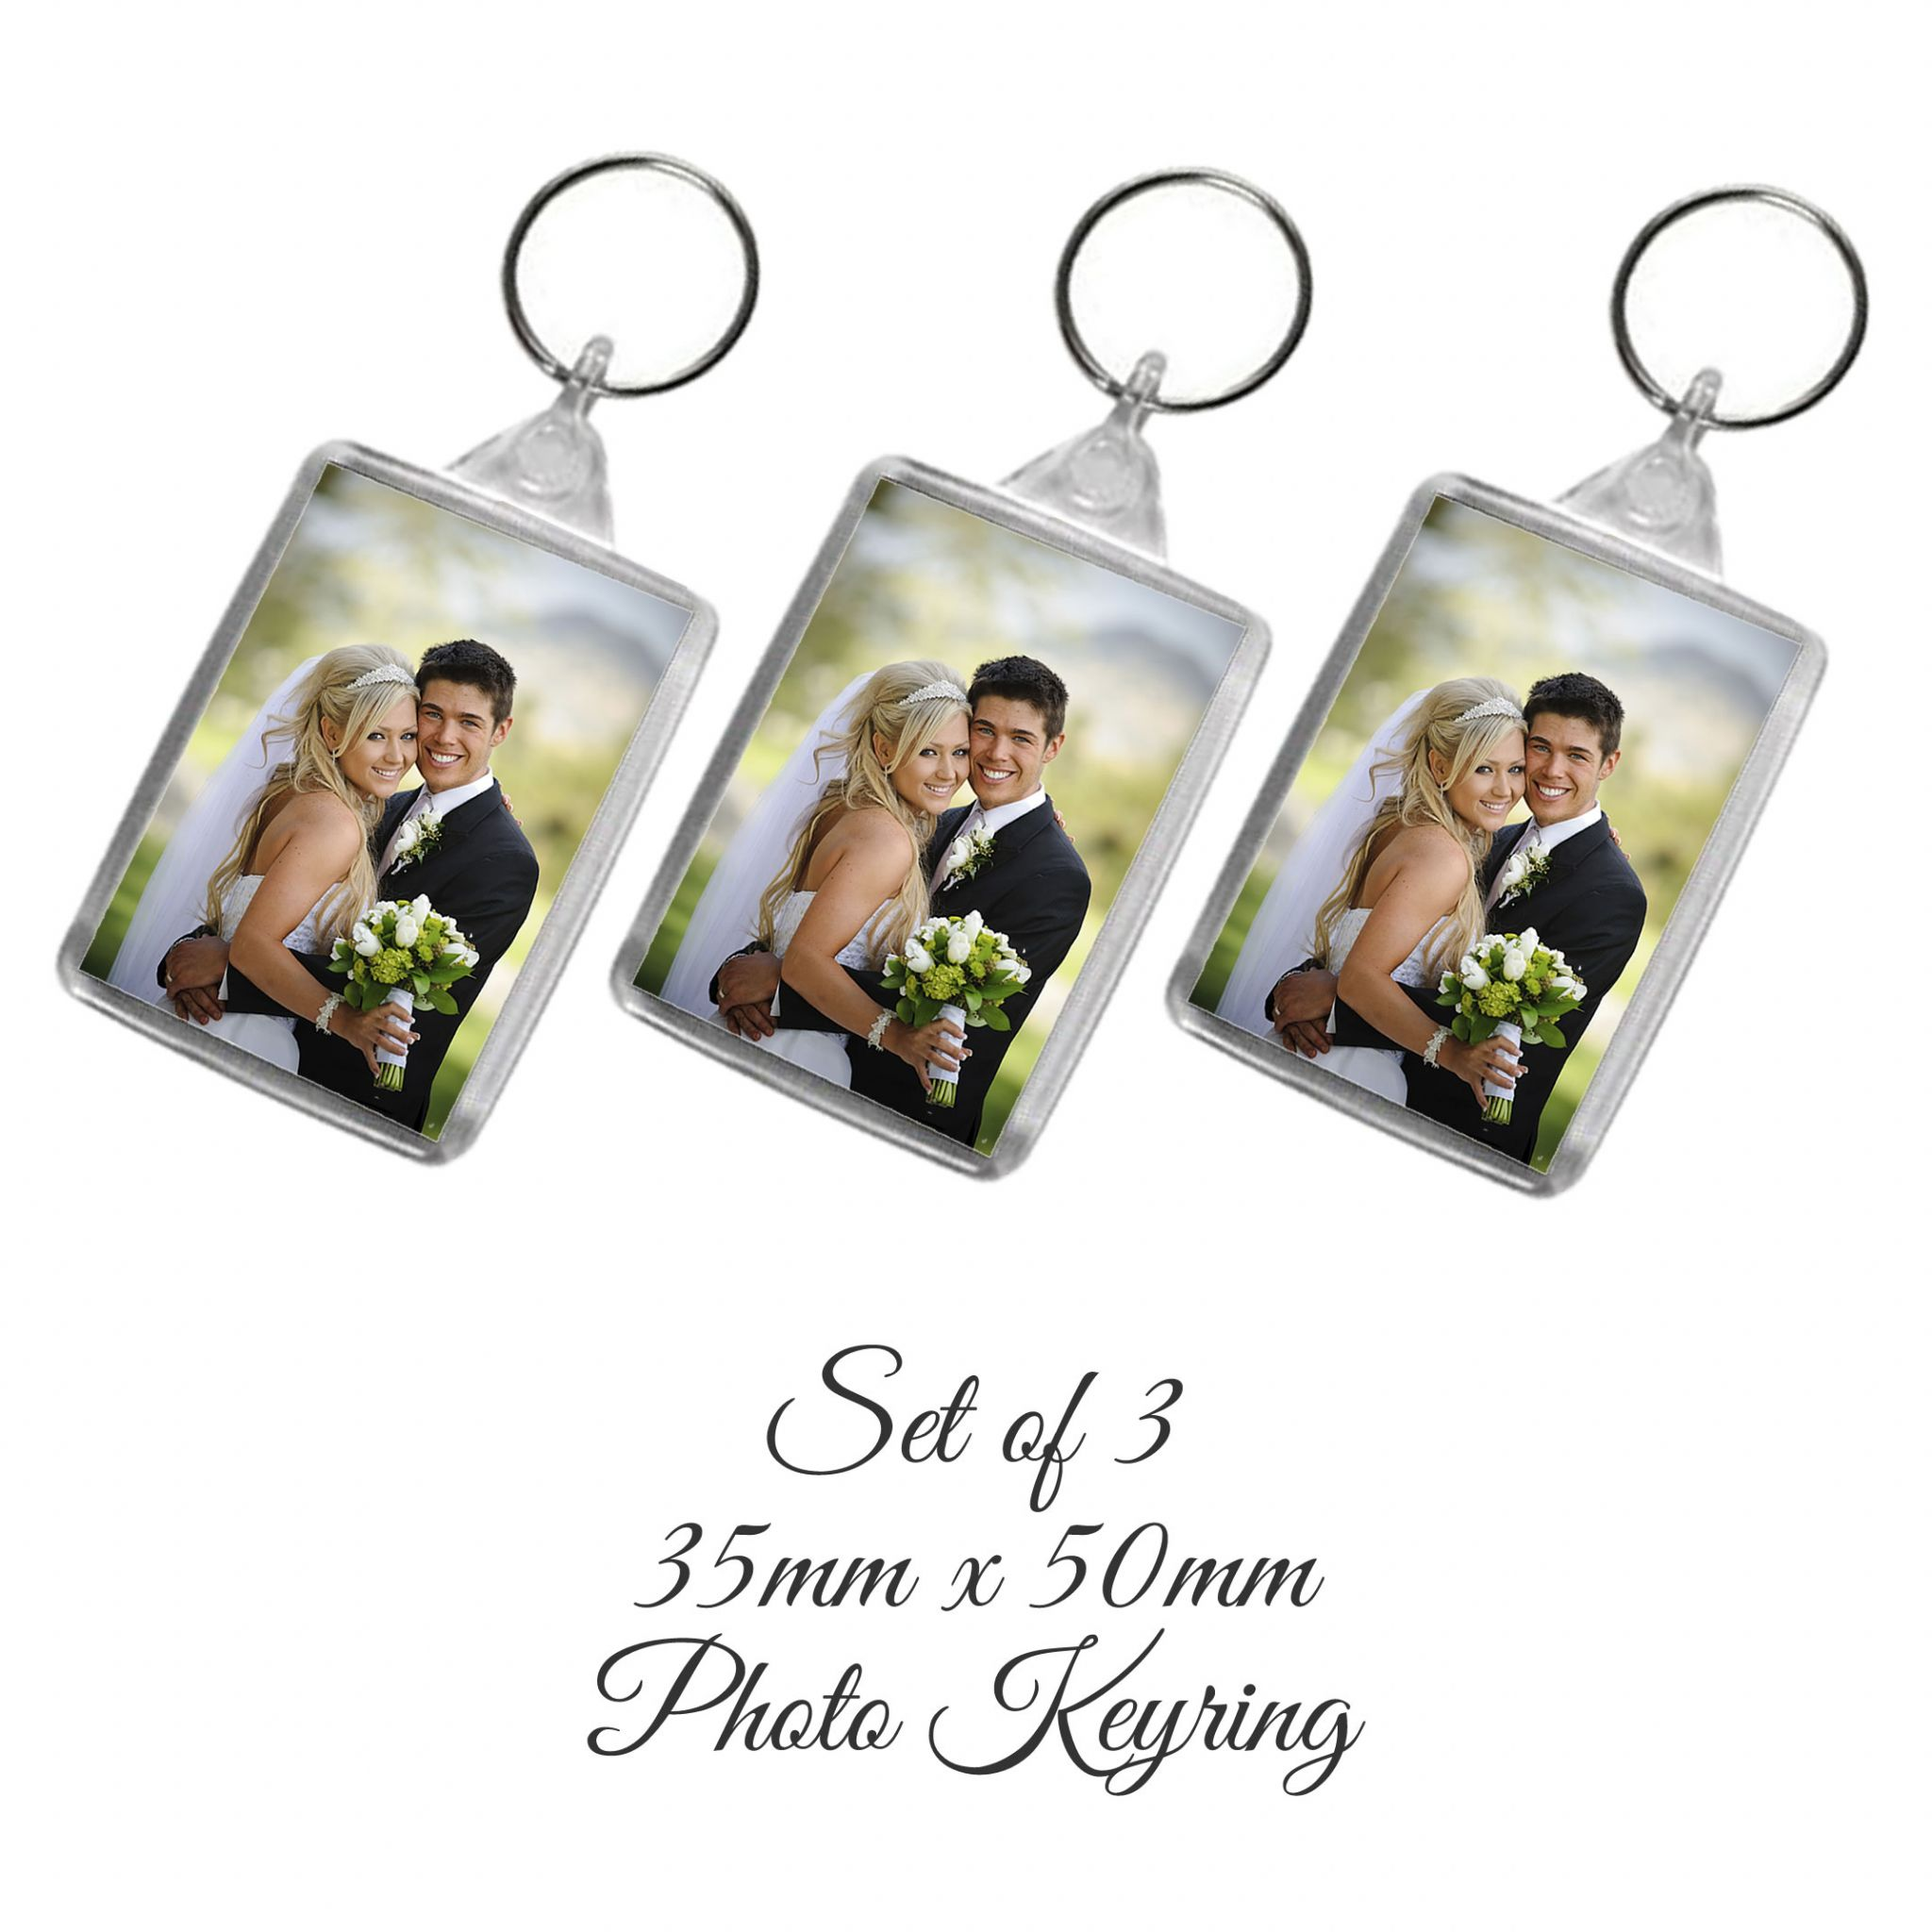 Little Gifts With Love - Set of 3 Personalised Photo Keyrings 50mm x 35mm Add Any Photo or Image + free Delivery